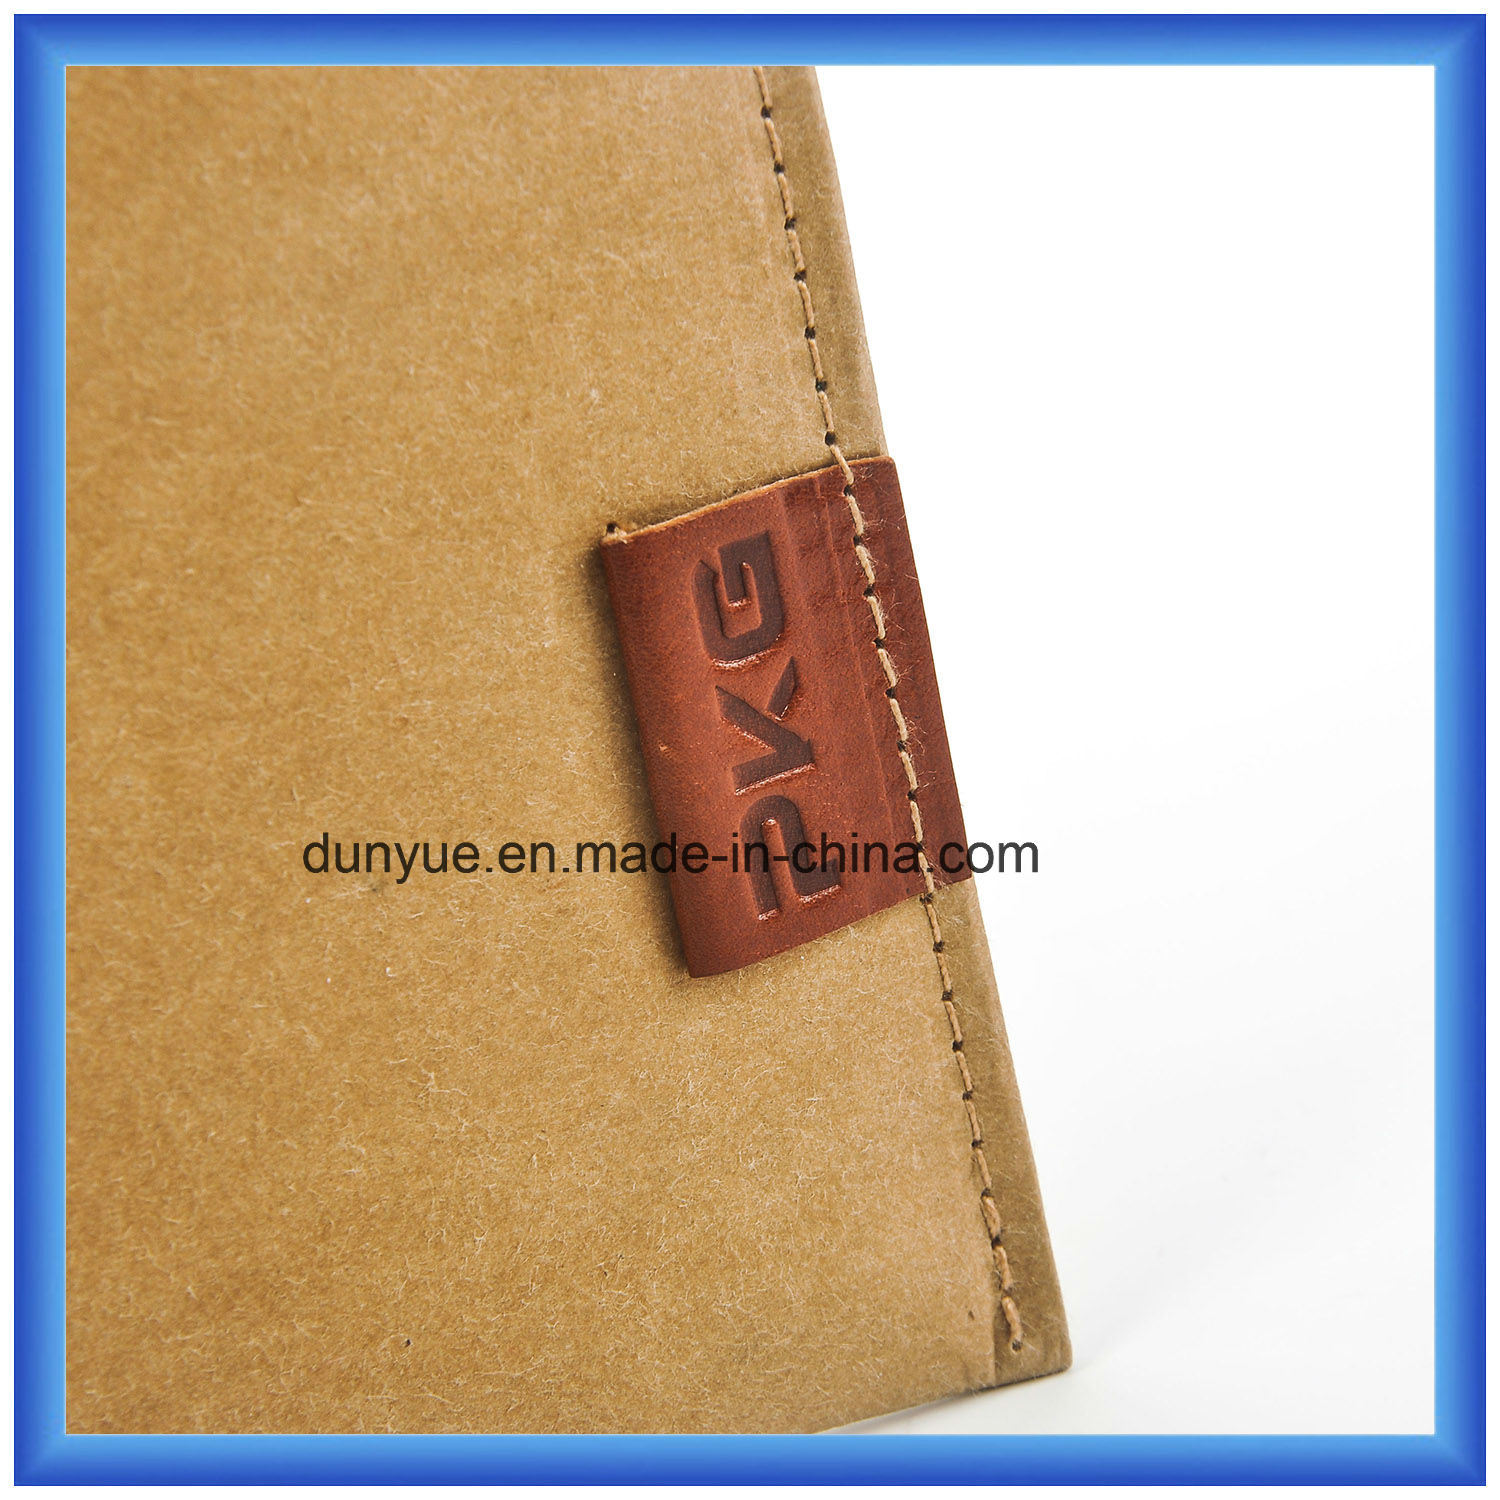 Latest Arrival New Material DuPont Paper Laptop Briefcase Bag, Promotion Envelope Shape Customized Tyvek Paper Laptop Sleeve